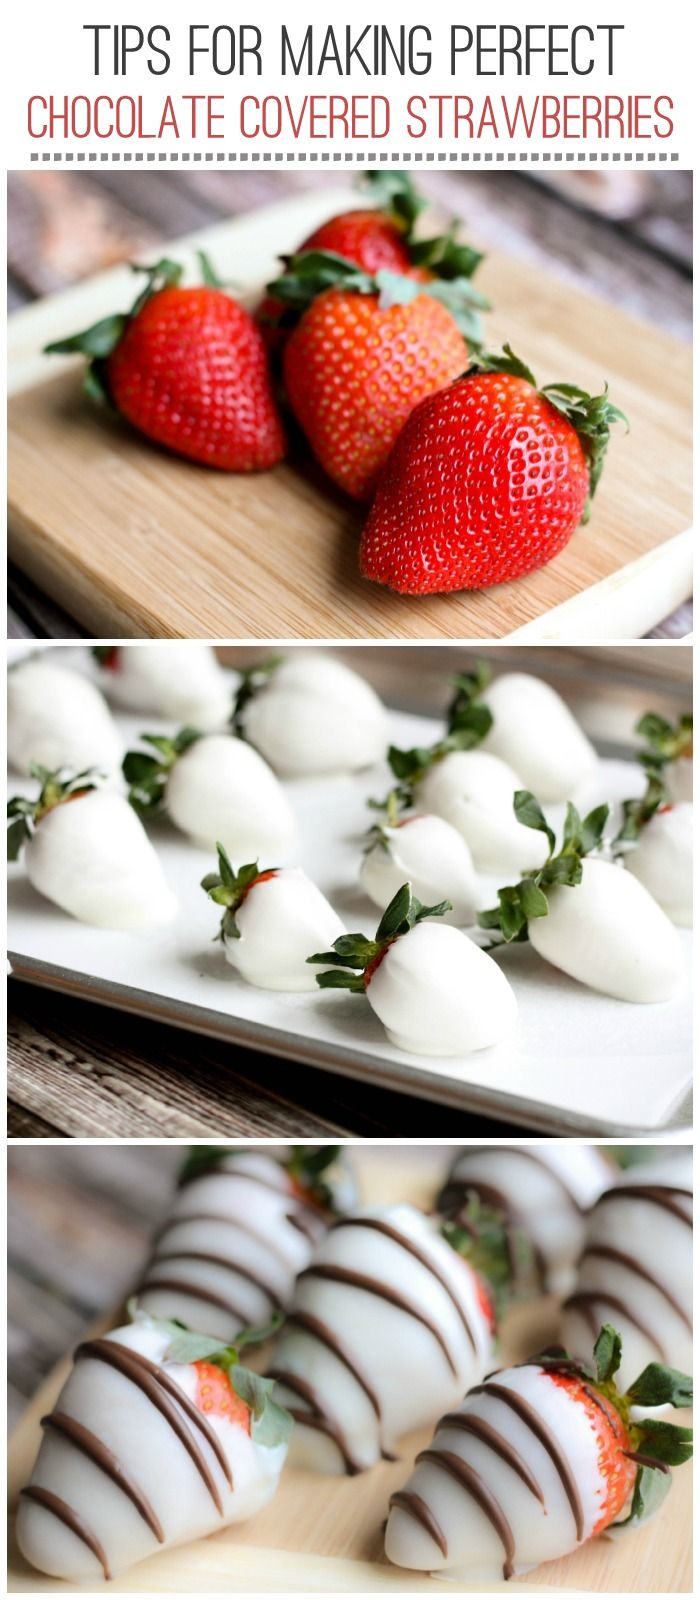 Chocolate Covered Strawberries Tutorial